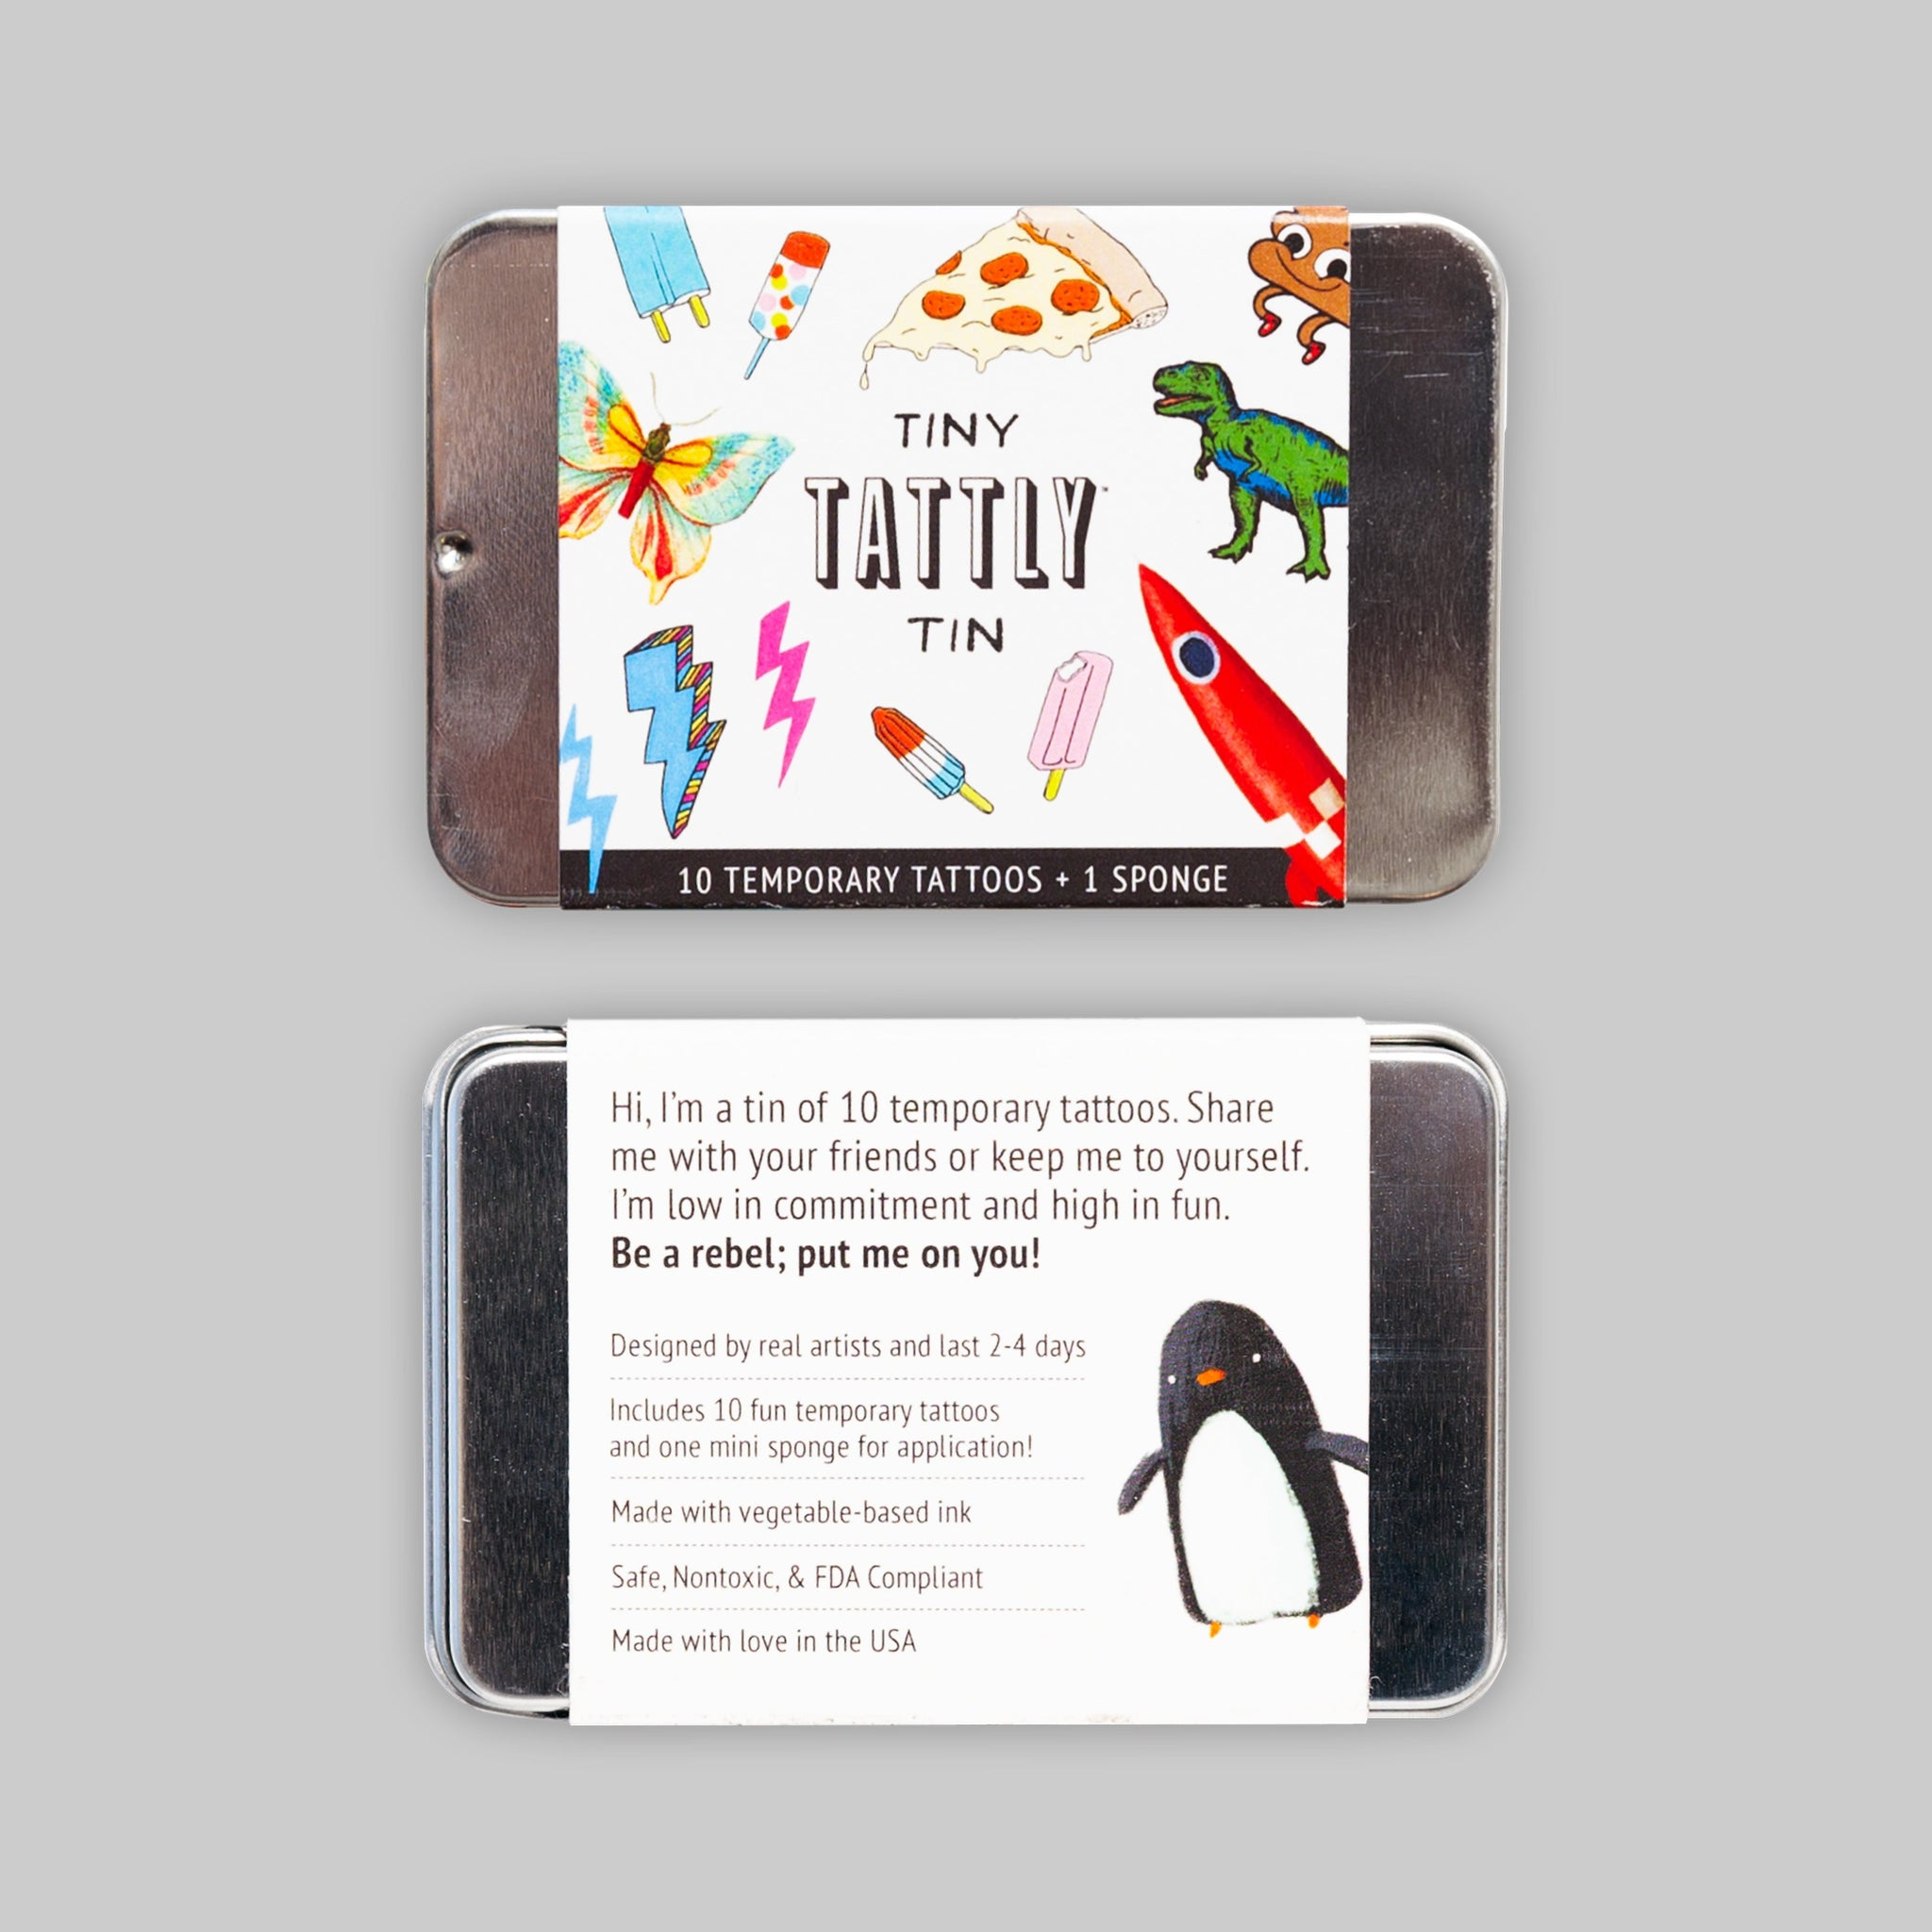 THE TINY FUNNER TIN X10 TATTOOS + SPONGE